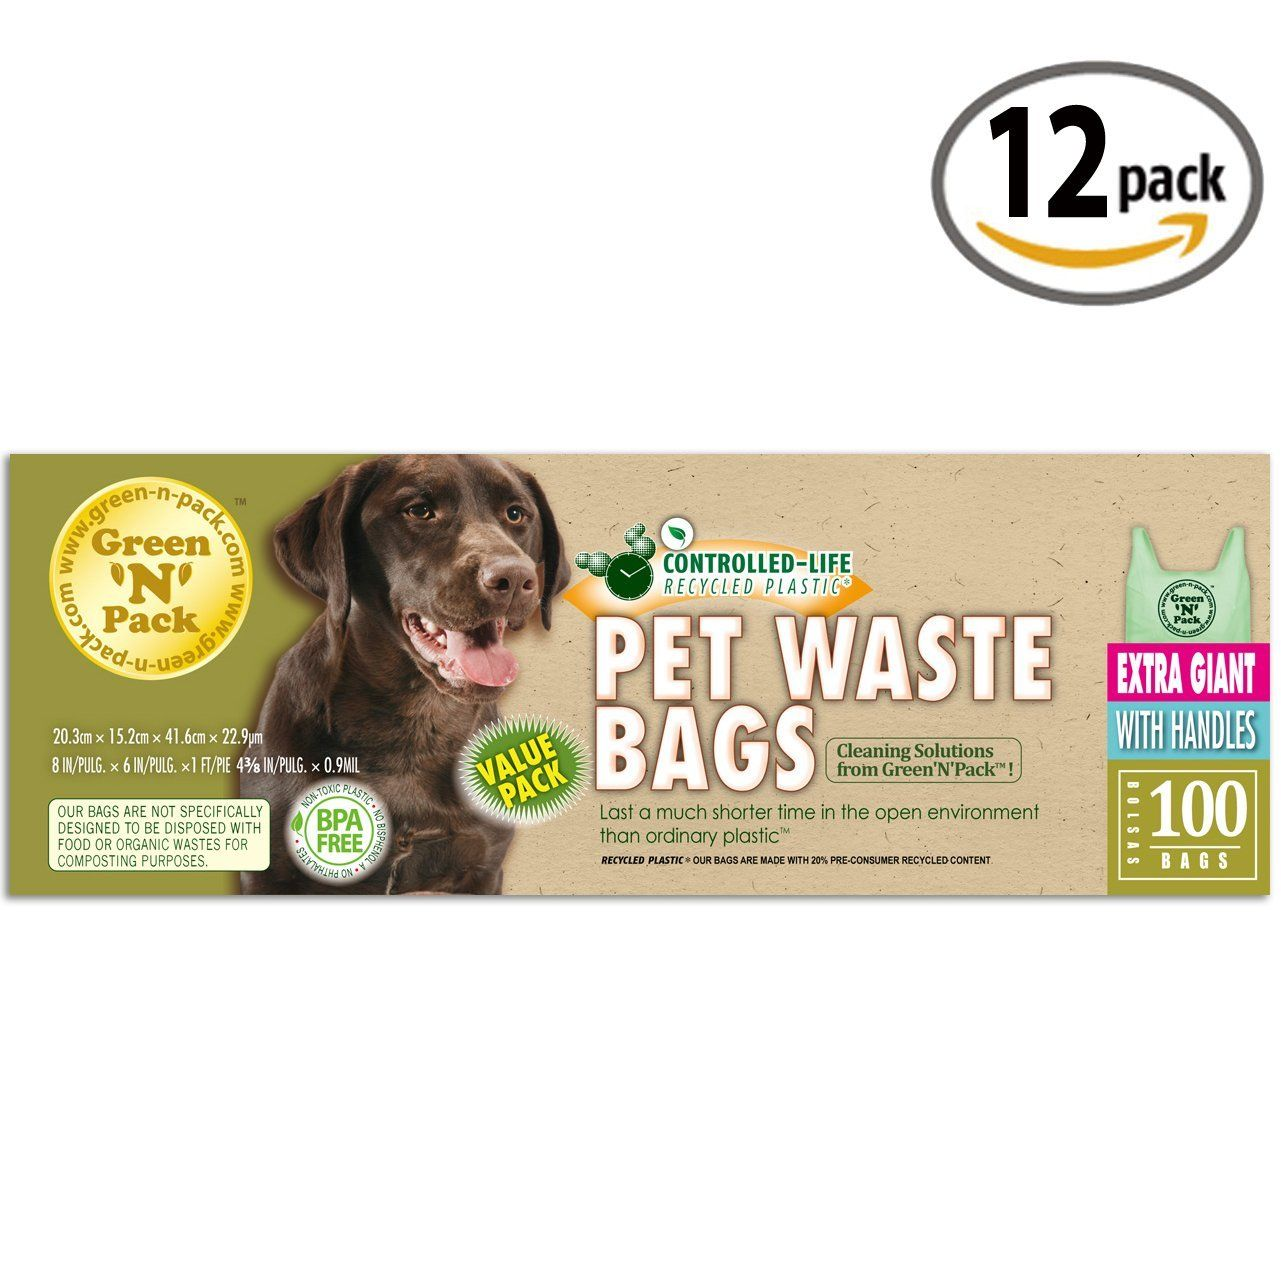 2d53d83e8873 Green'N'Pack Extra Large and Heavy Duty Bags for Dog Waste, Cat ...